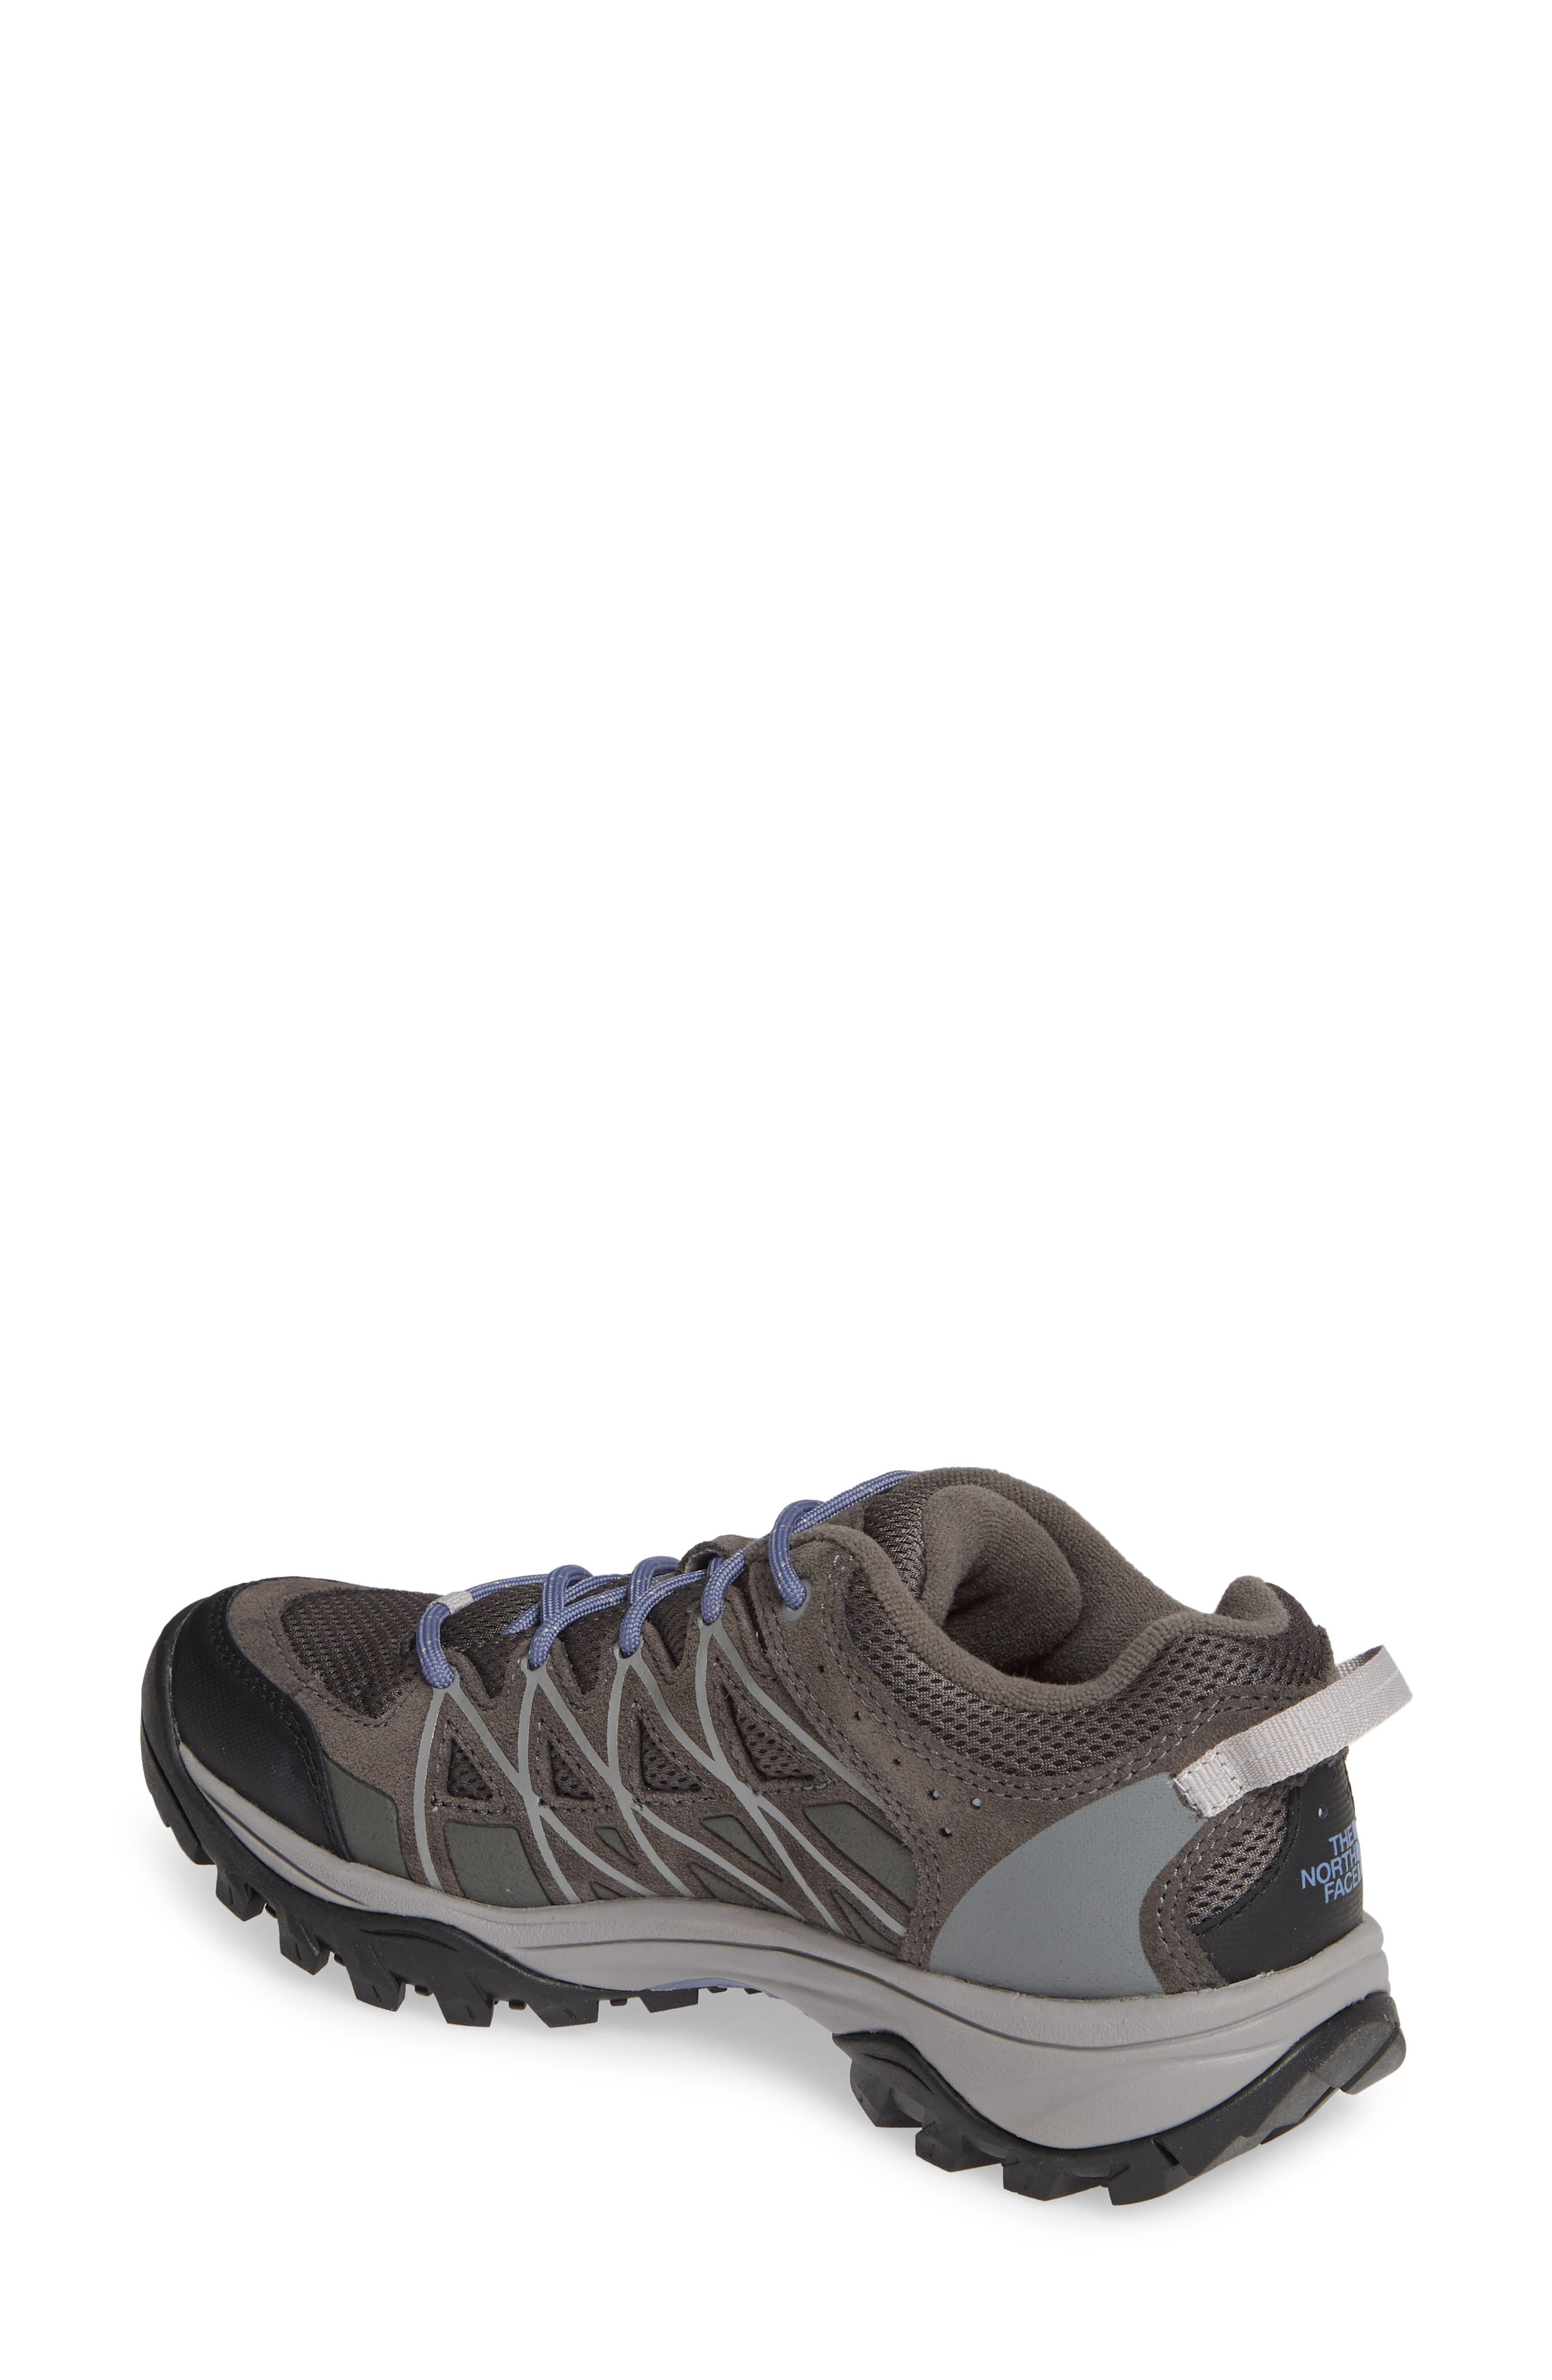 THE NORTH FACE, Storm III Waterproof Hiking Sneaker, Alternate thumbnail 2, color, DARK GULL GREY/ MARLIN BLUE